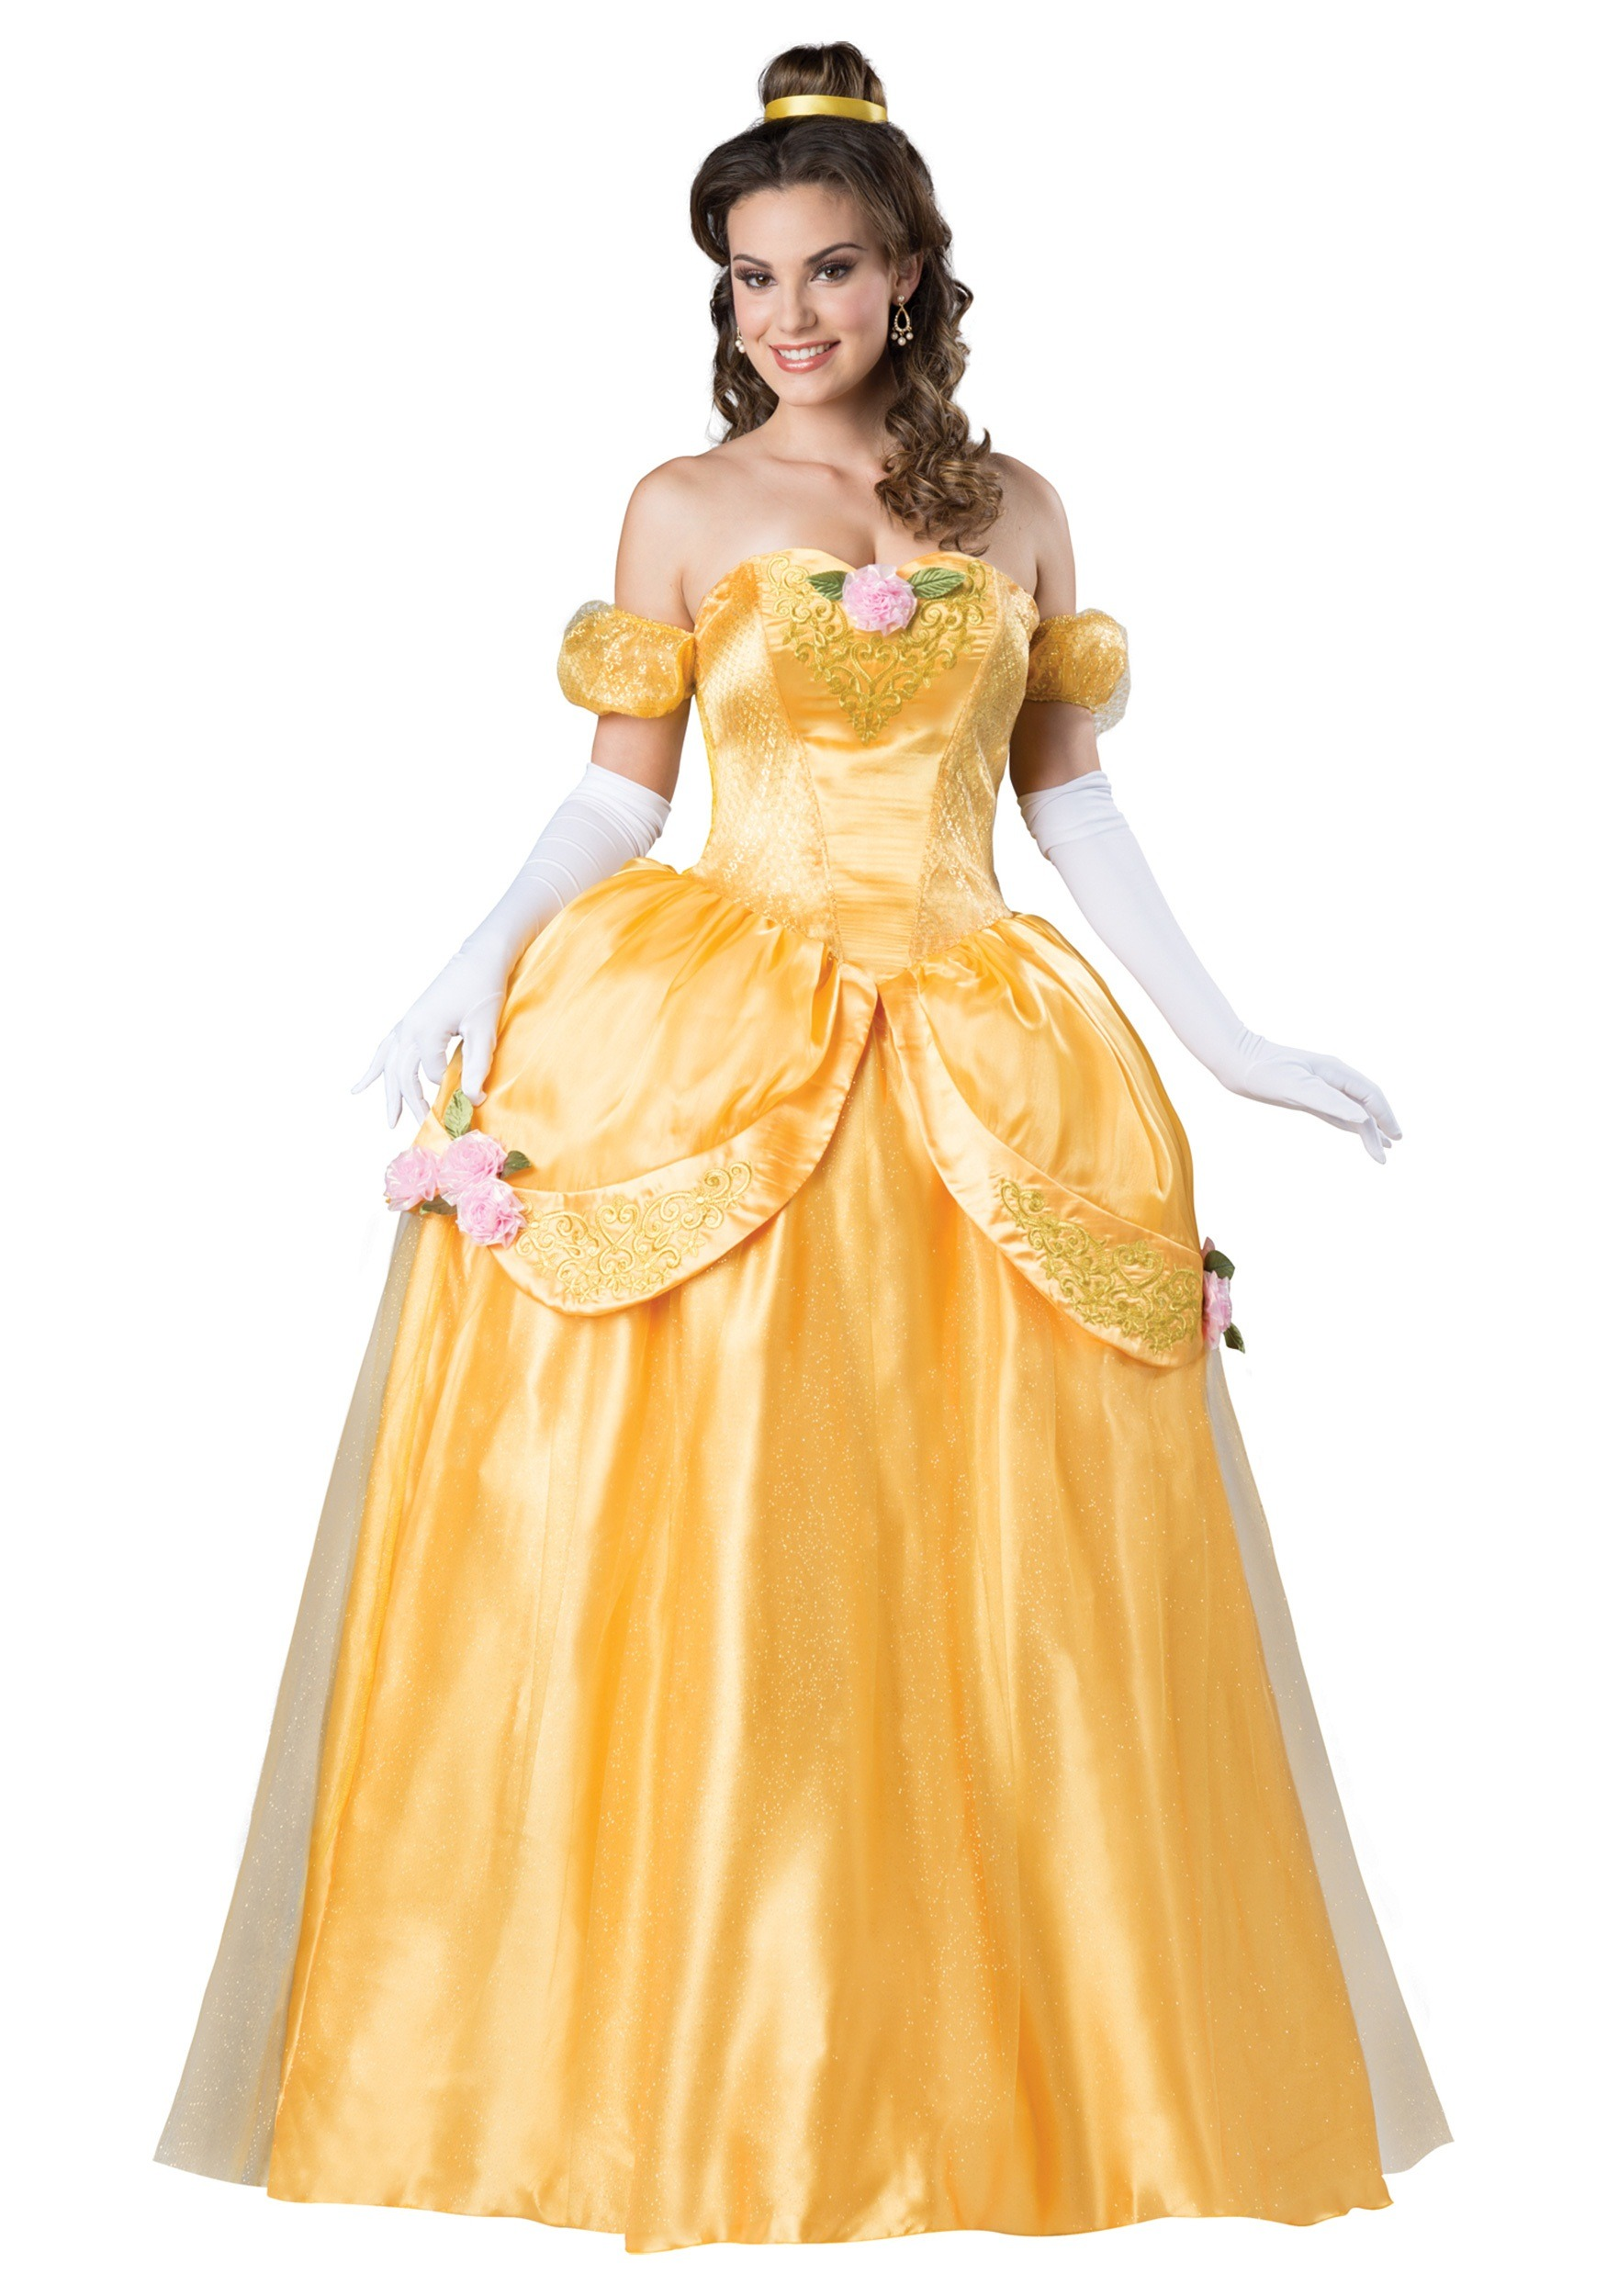 Womenu0027s Beautiful Princess Costume  sc 1 st  Halloween Costumes & High Quality Elite Costumes - HalloweenCostumes.com